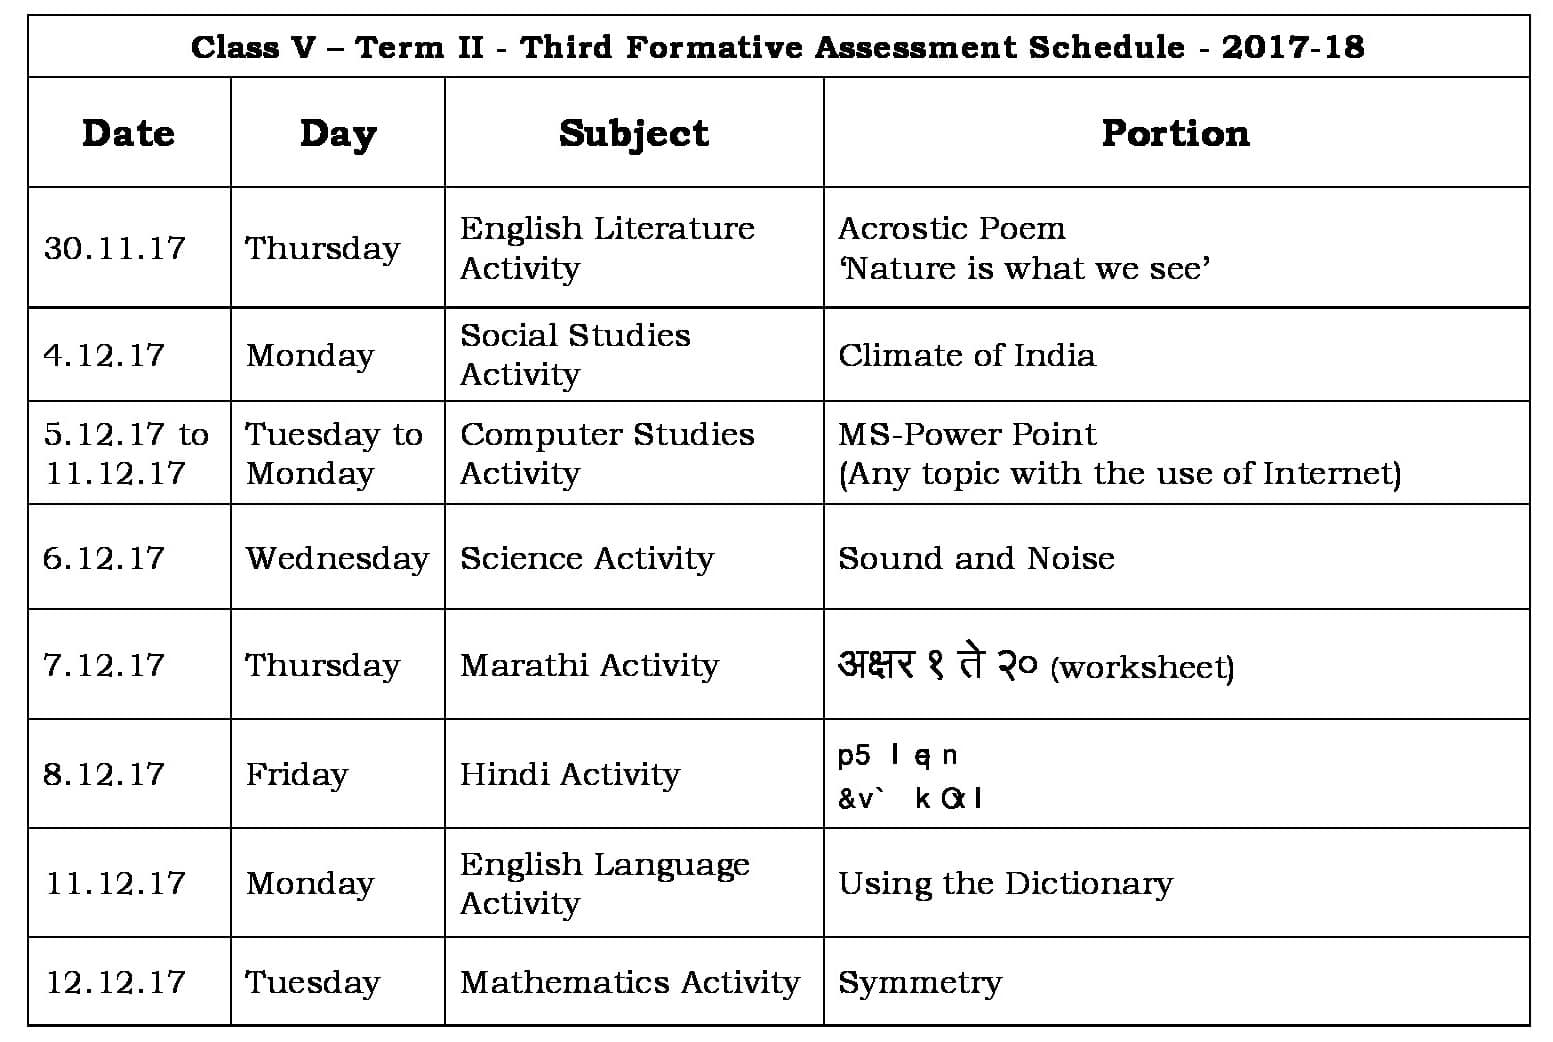 Term II FA-3 Schedule